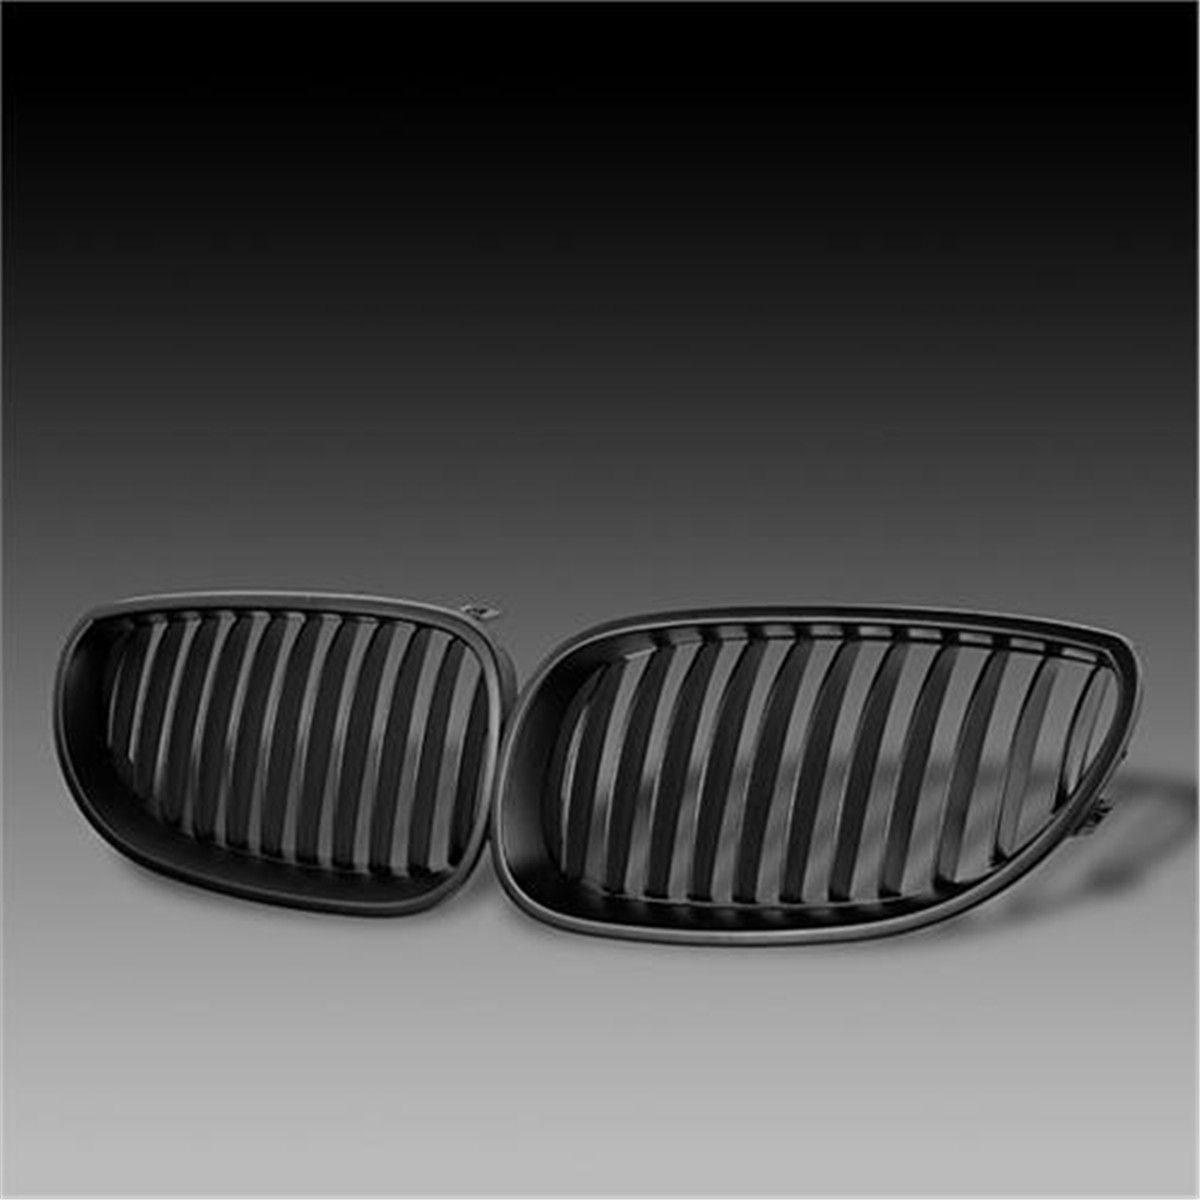 Front Black Sport Wide Kidney Grille Grill For BMW E60 E61 5 Series M5 2003-2009